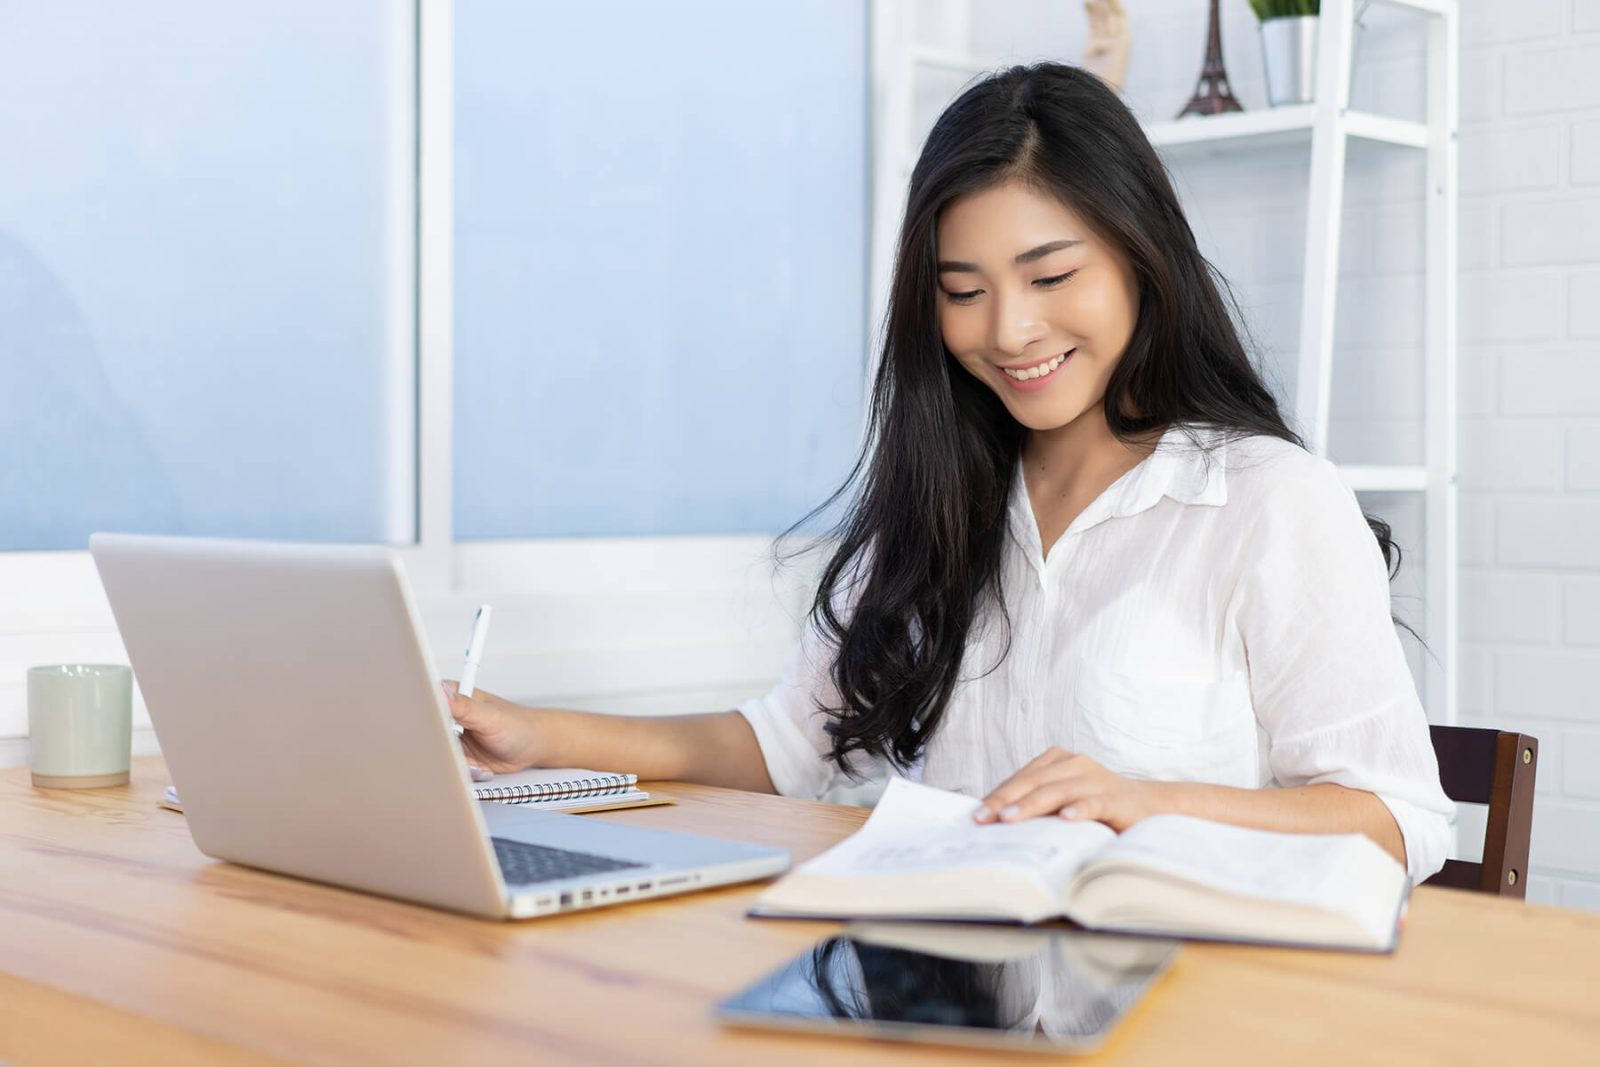 female student learning at home